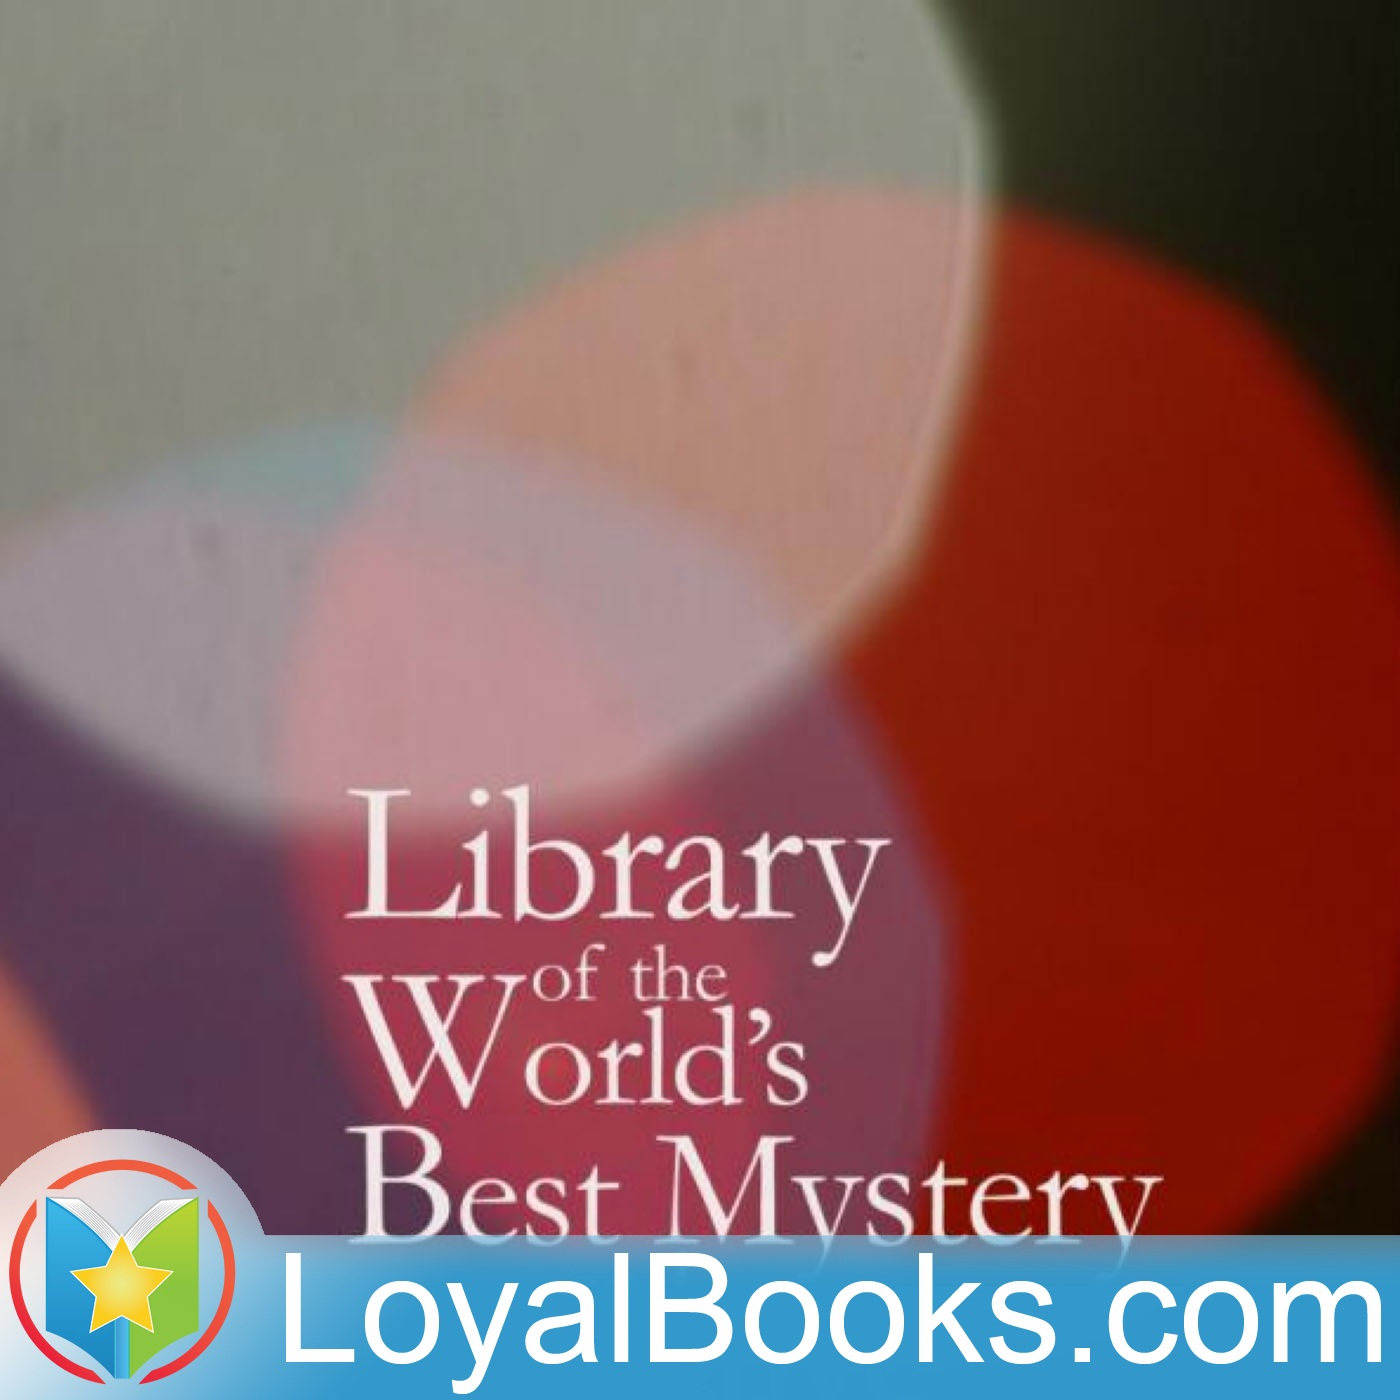 <![CDATA[Library of the World's Best Mystery and Detective Stories by Julian Hawthorne, editor]]>